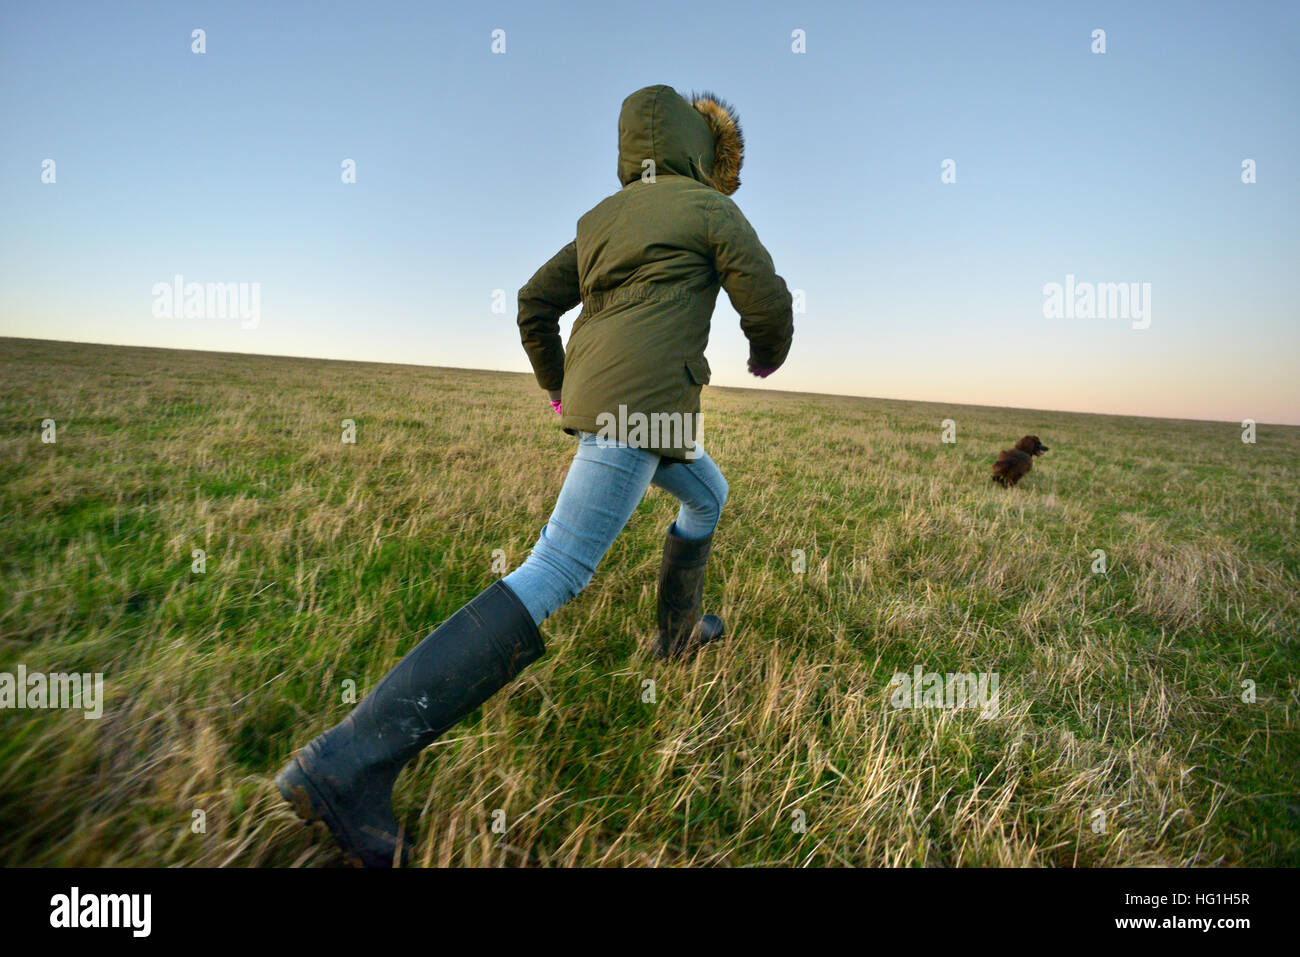 Child in welly boots running after a dog on a grassy hill - Stock Image